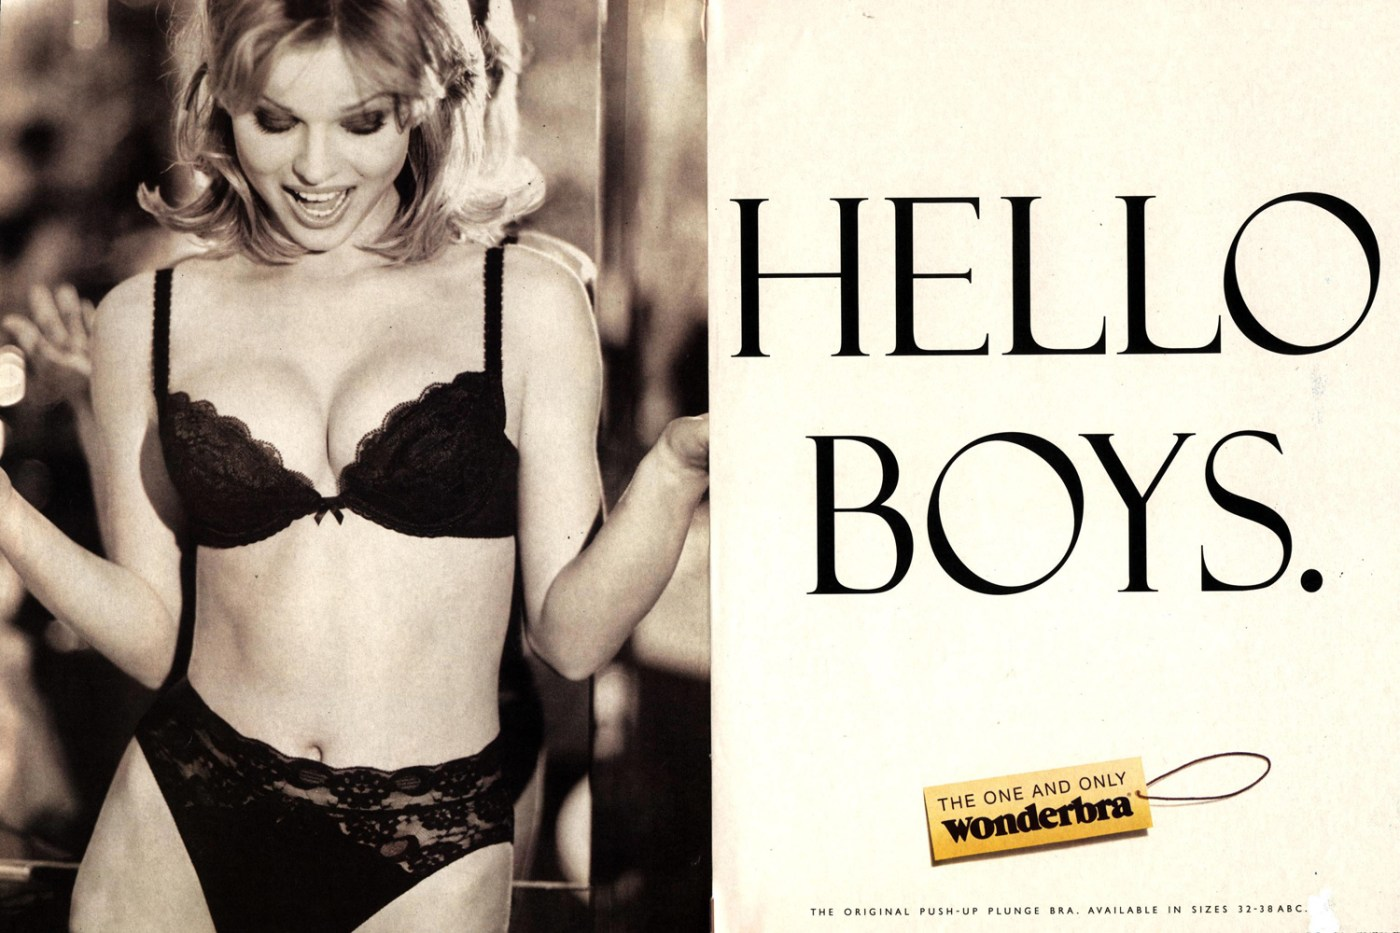 The infamous Wonderbra advert from 1994